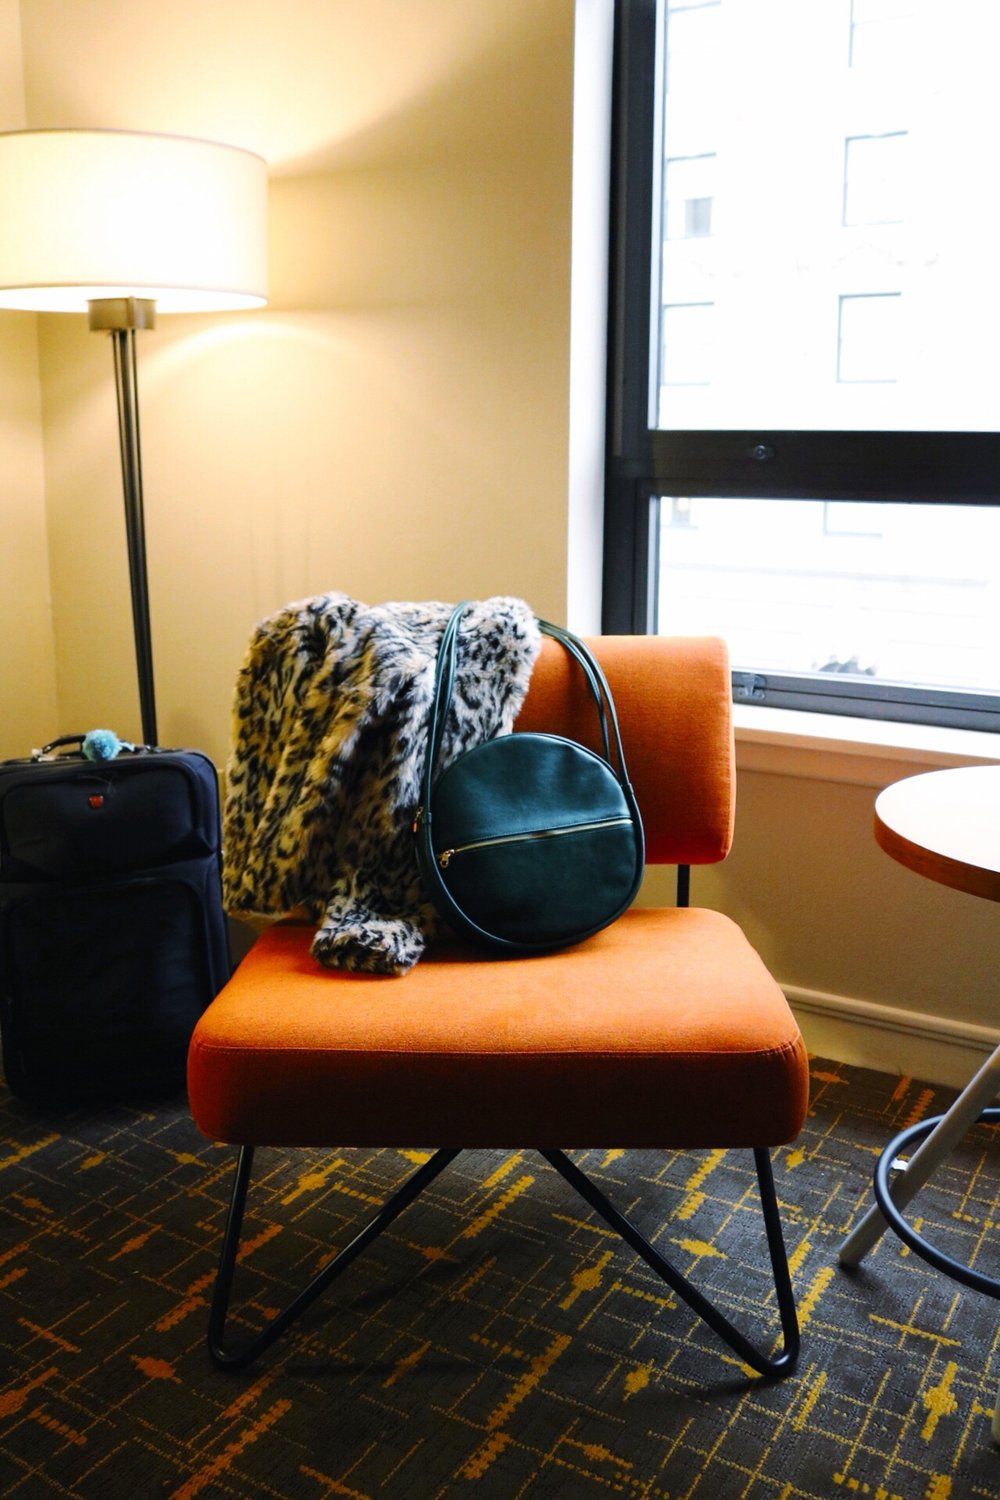 Travel, orange modern chair, San Francisco Hotel, Stanford Court Inn, Ban.do bag, cheetah jacket